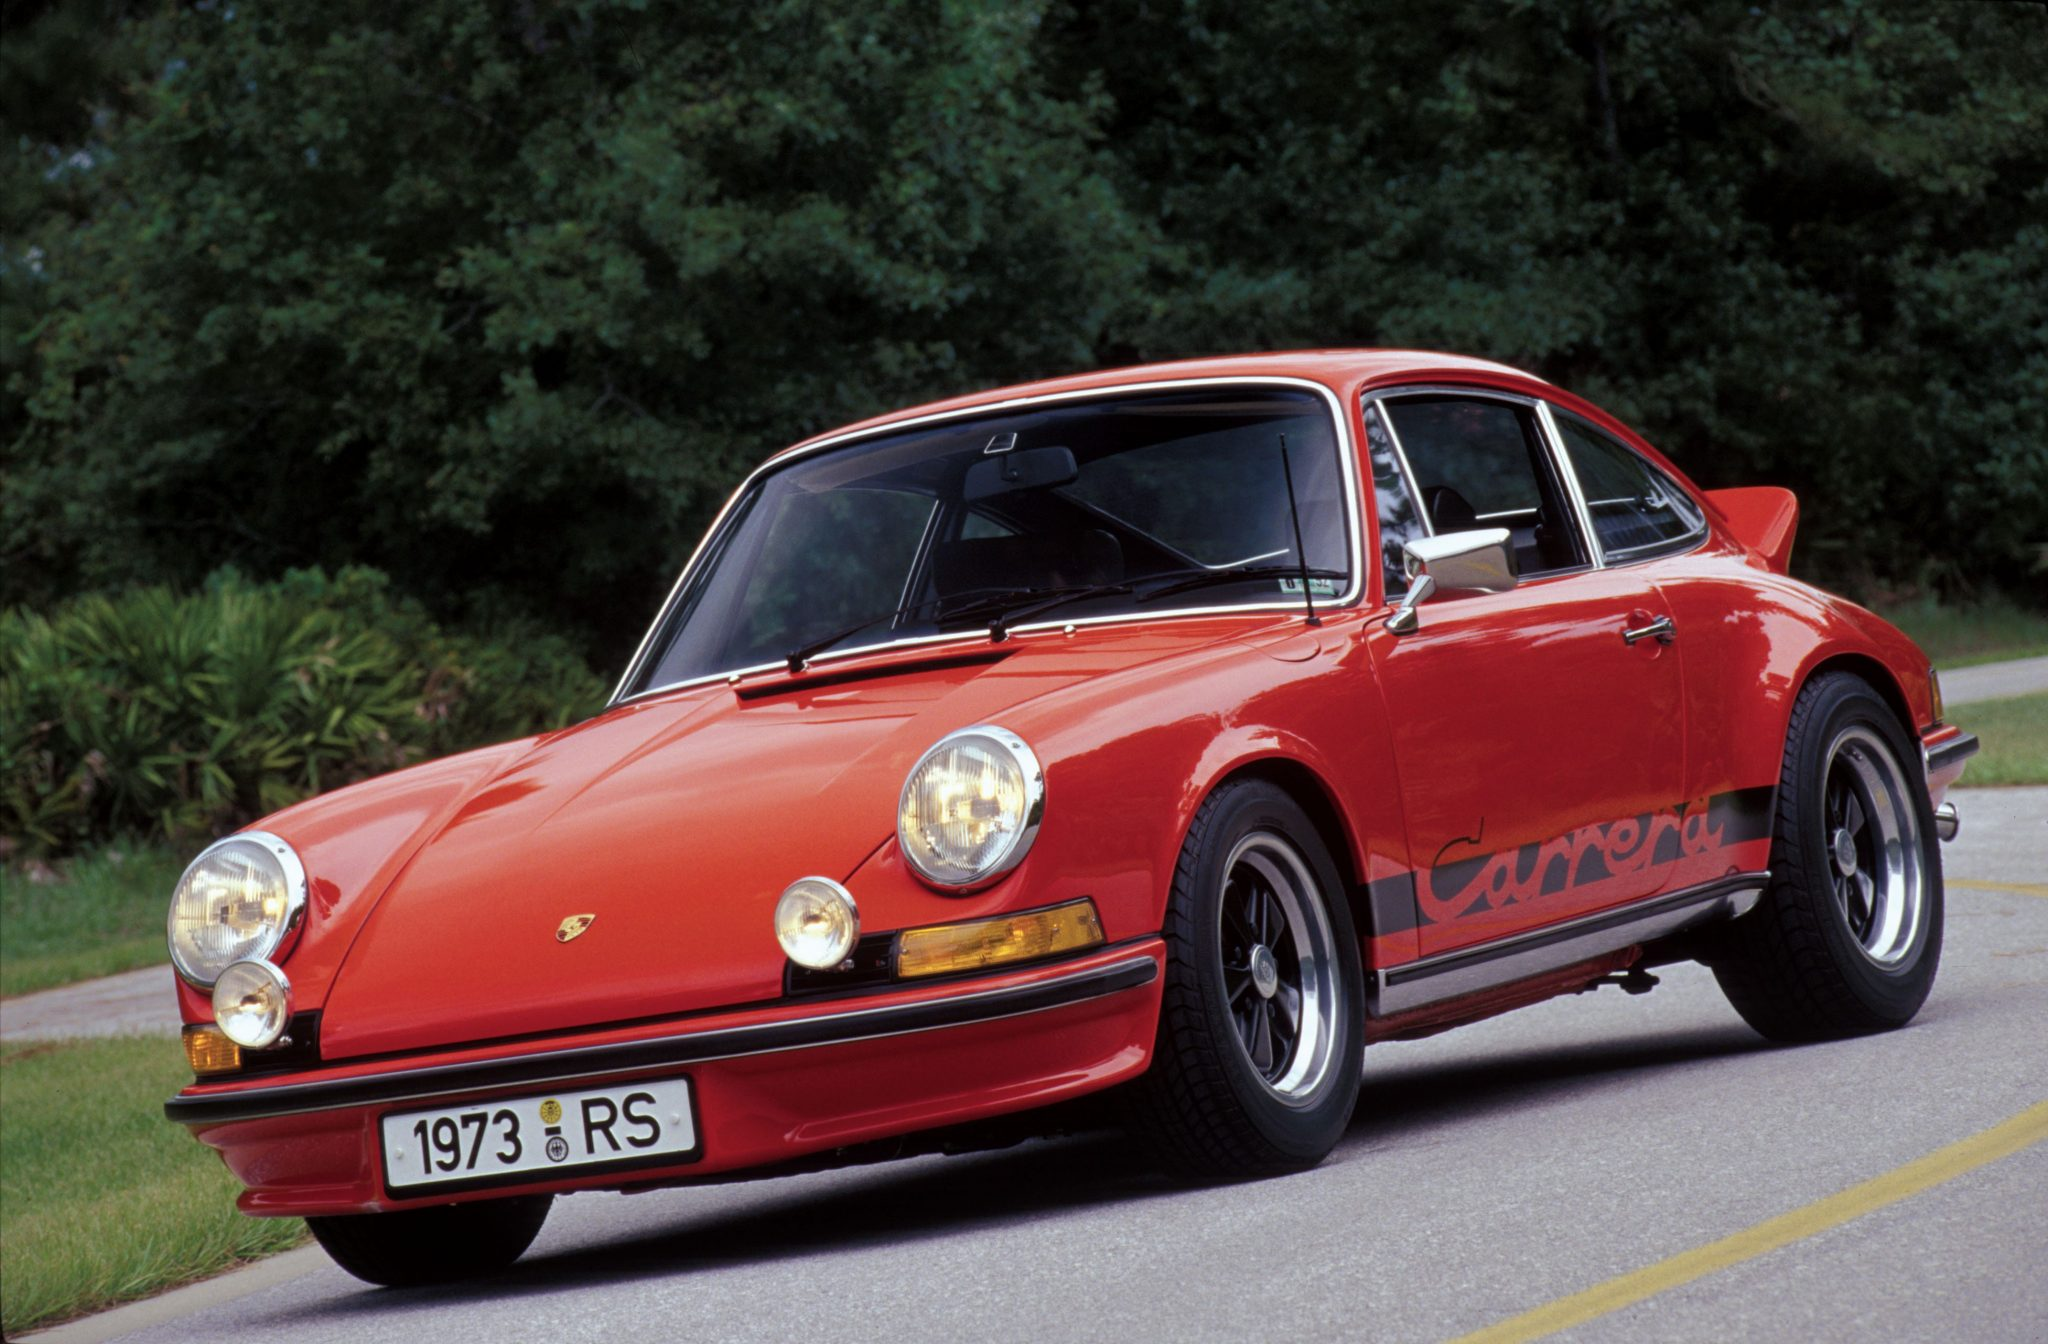 1973 porsche carrera rs 2 7 the ultimate classic 911. Black Bedroom Furniture Sets. Home Design Ideas